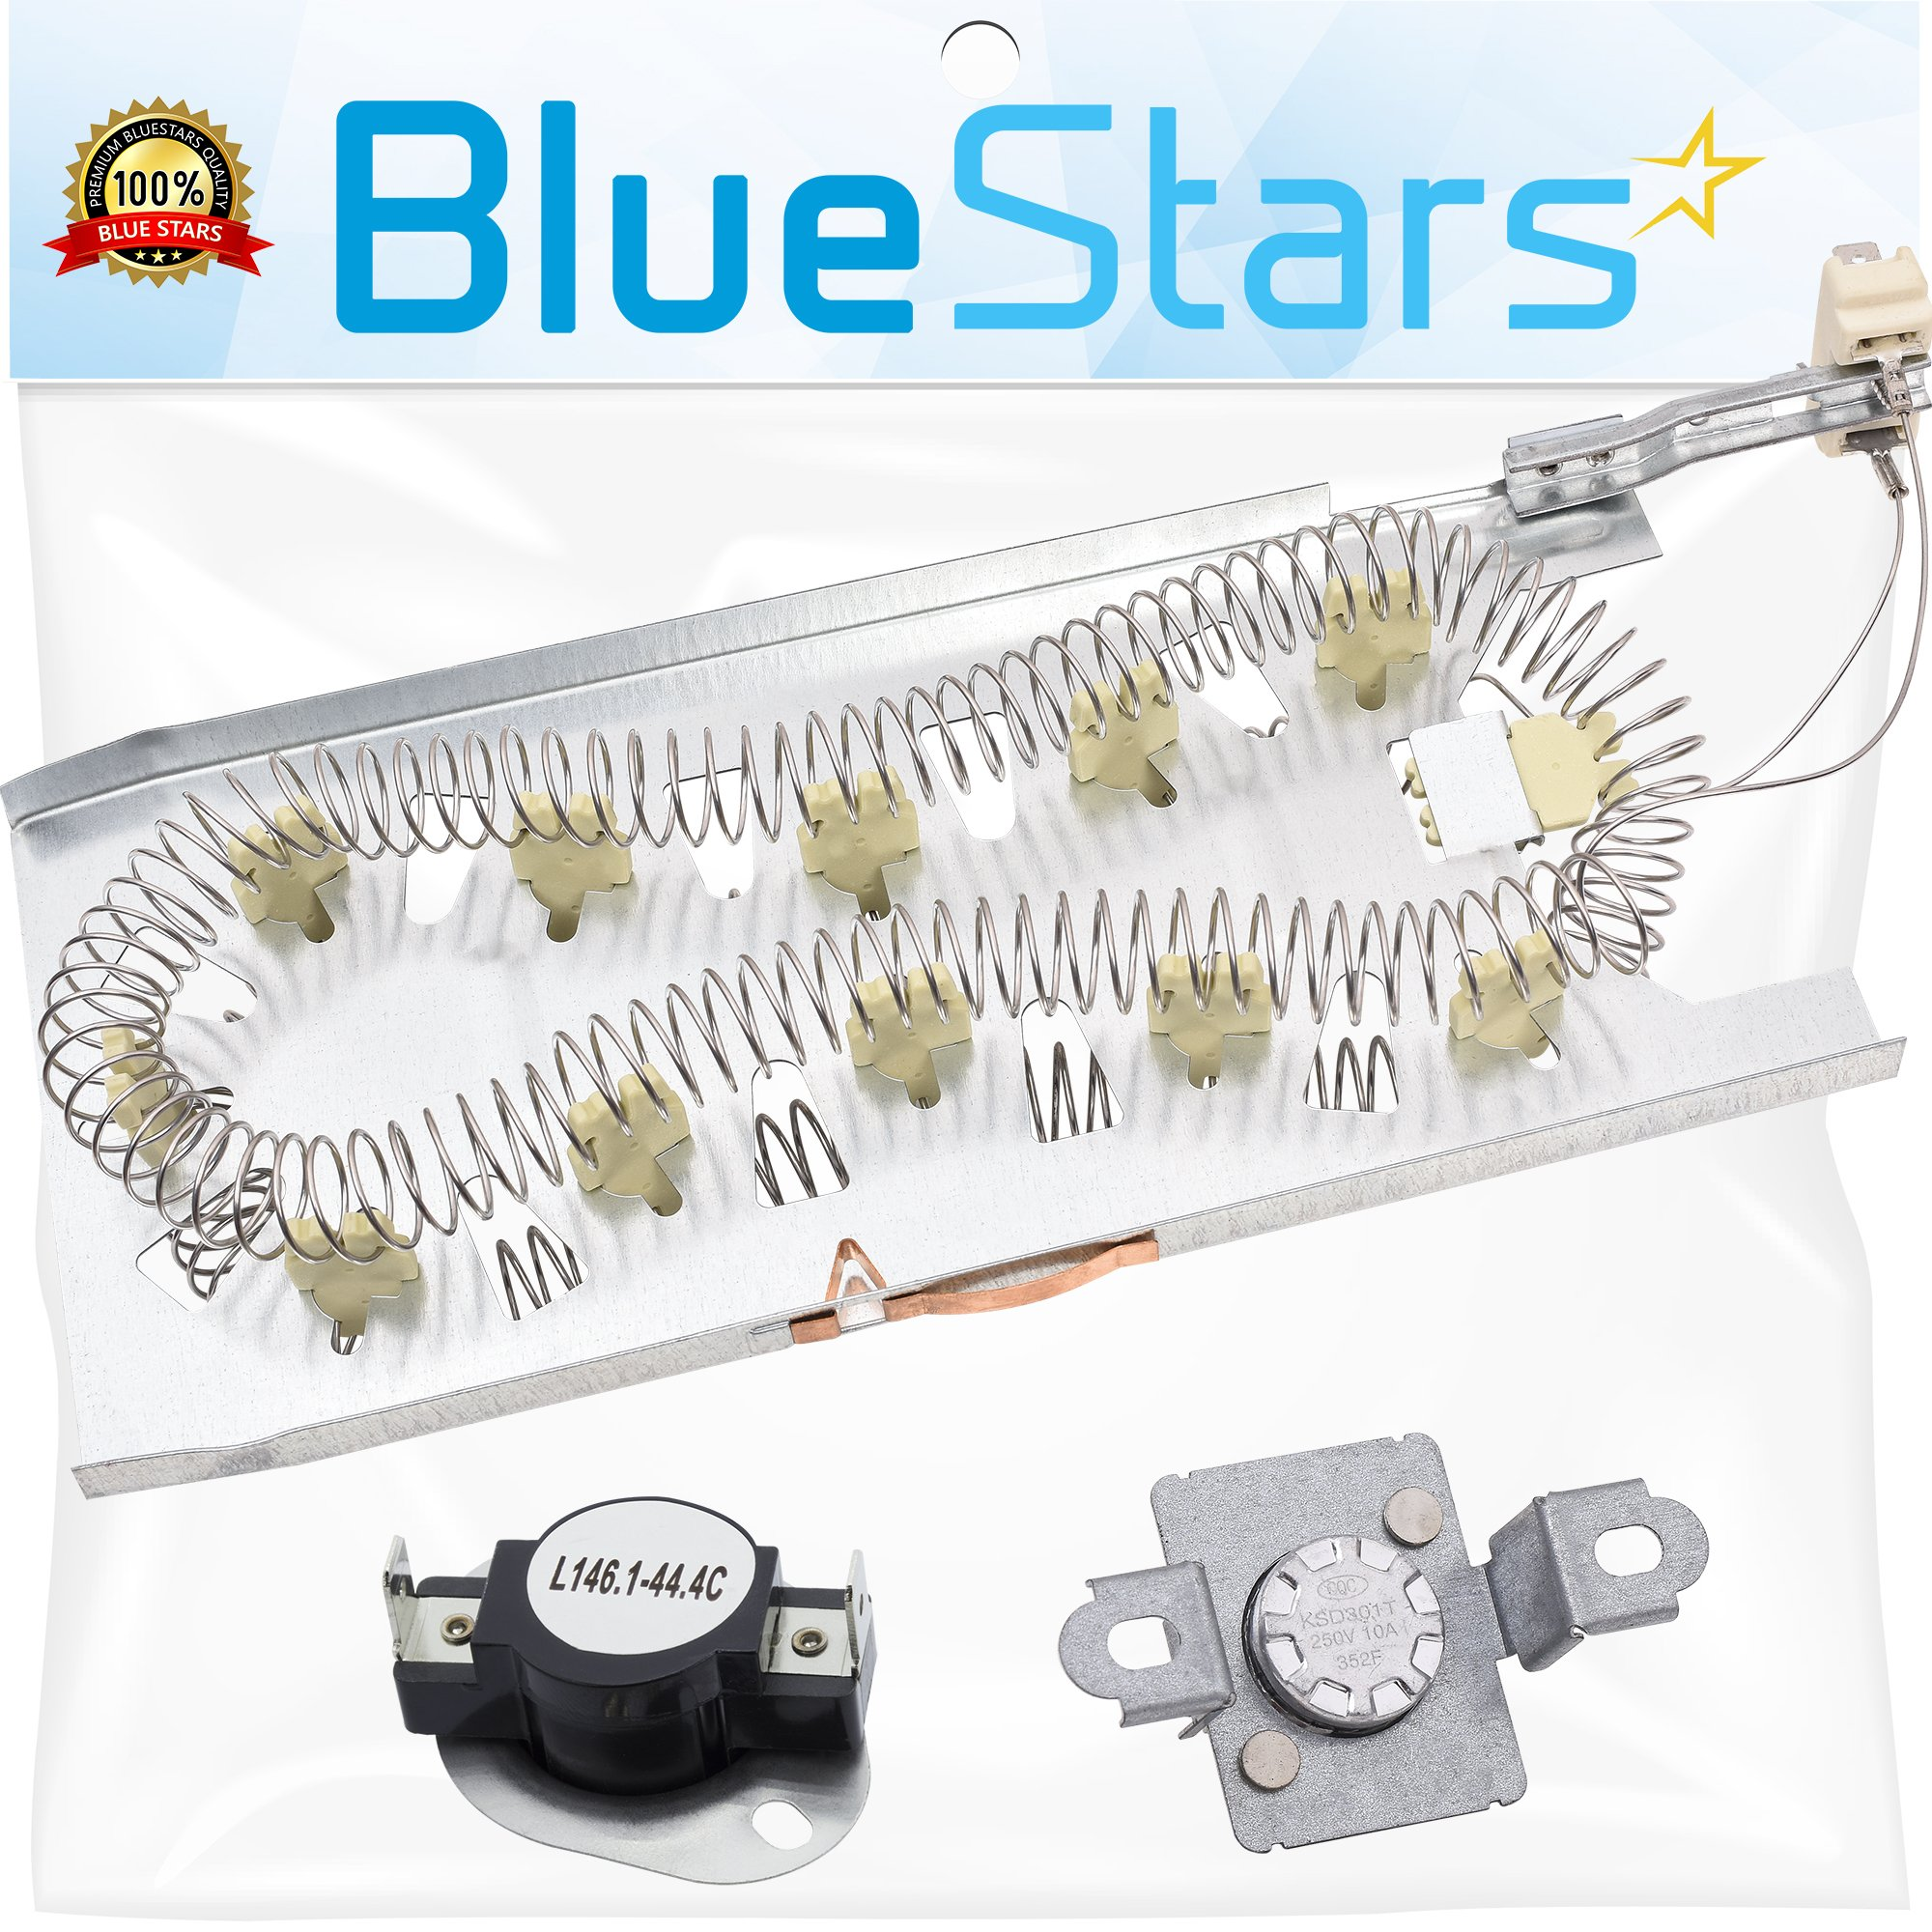 3387747 & 279973 Dryer Heating Element With Dryer Thermal Cut-off Fuse Kit by Blue Stars- Exact Fit for Whirlpool Kenmore Dryers by BlueStars